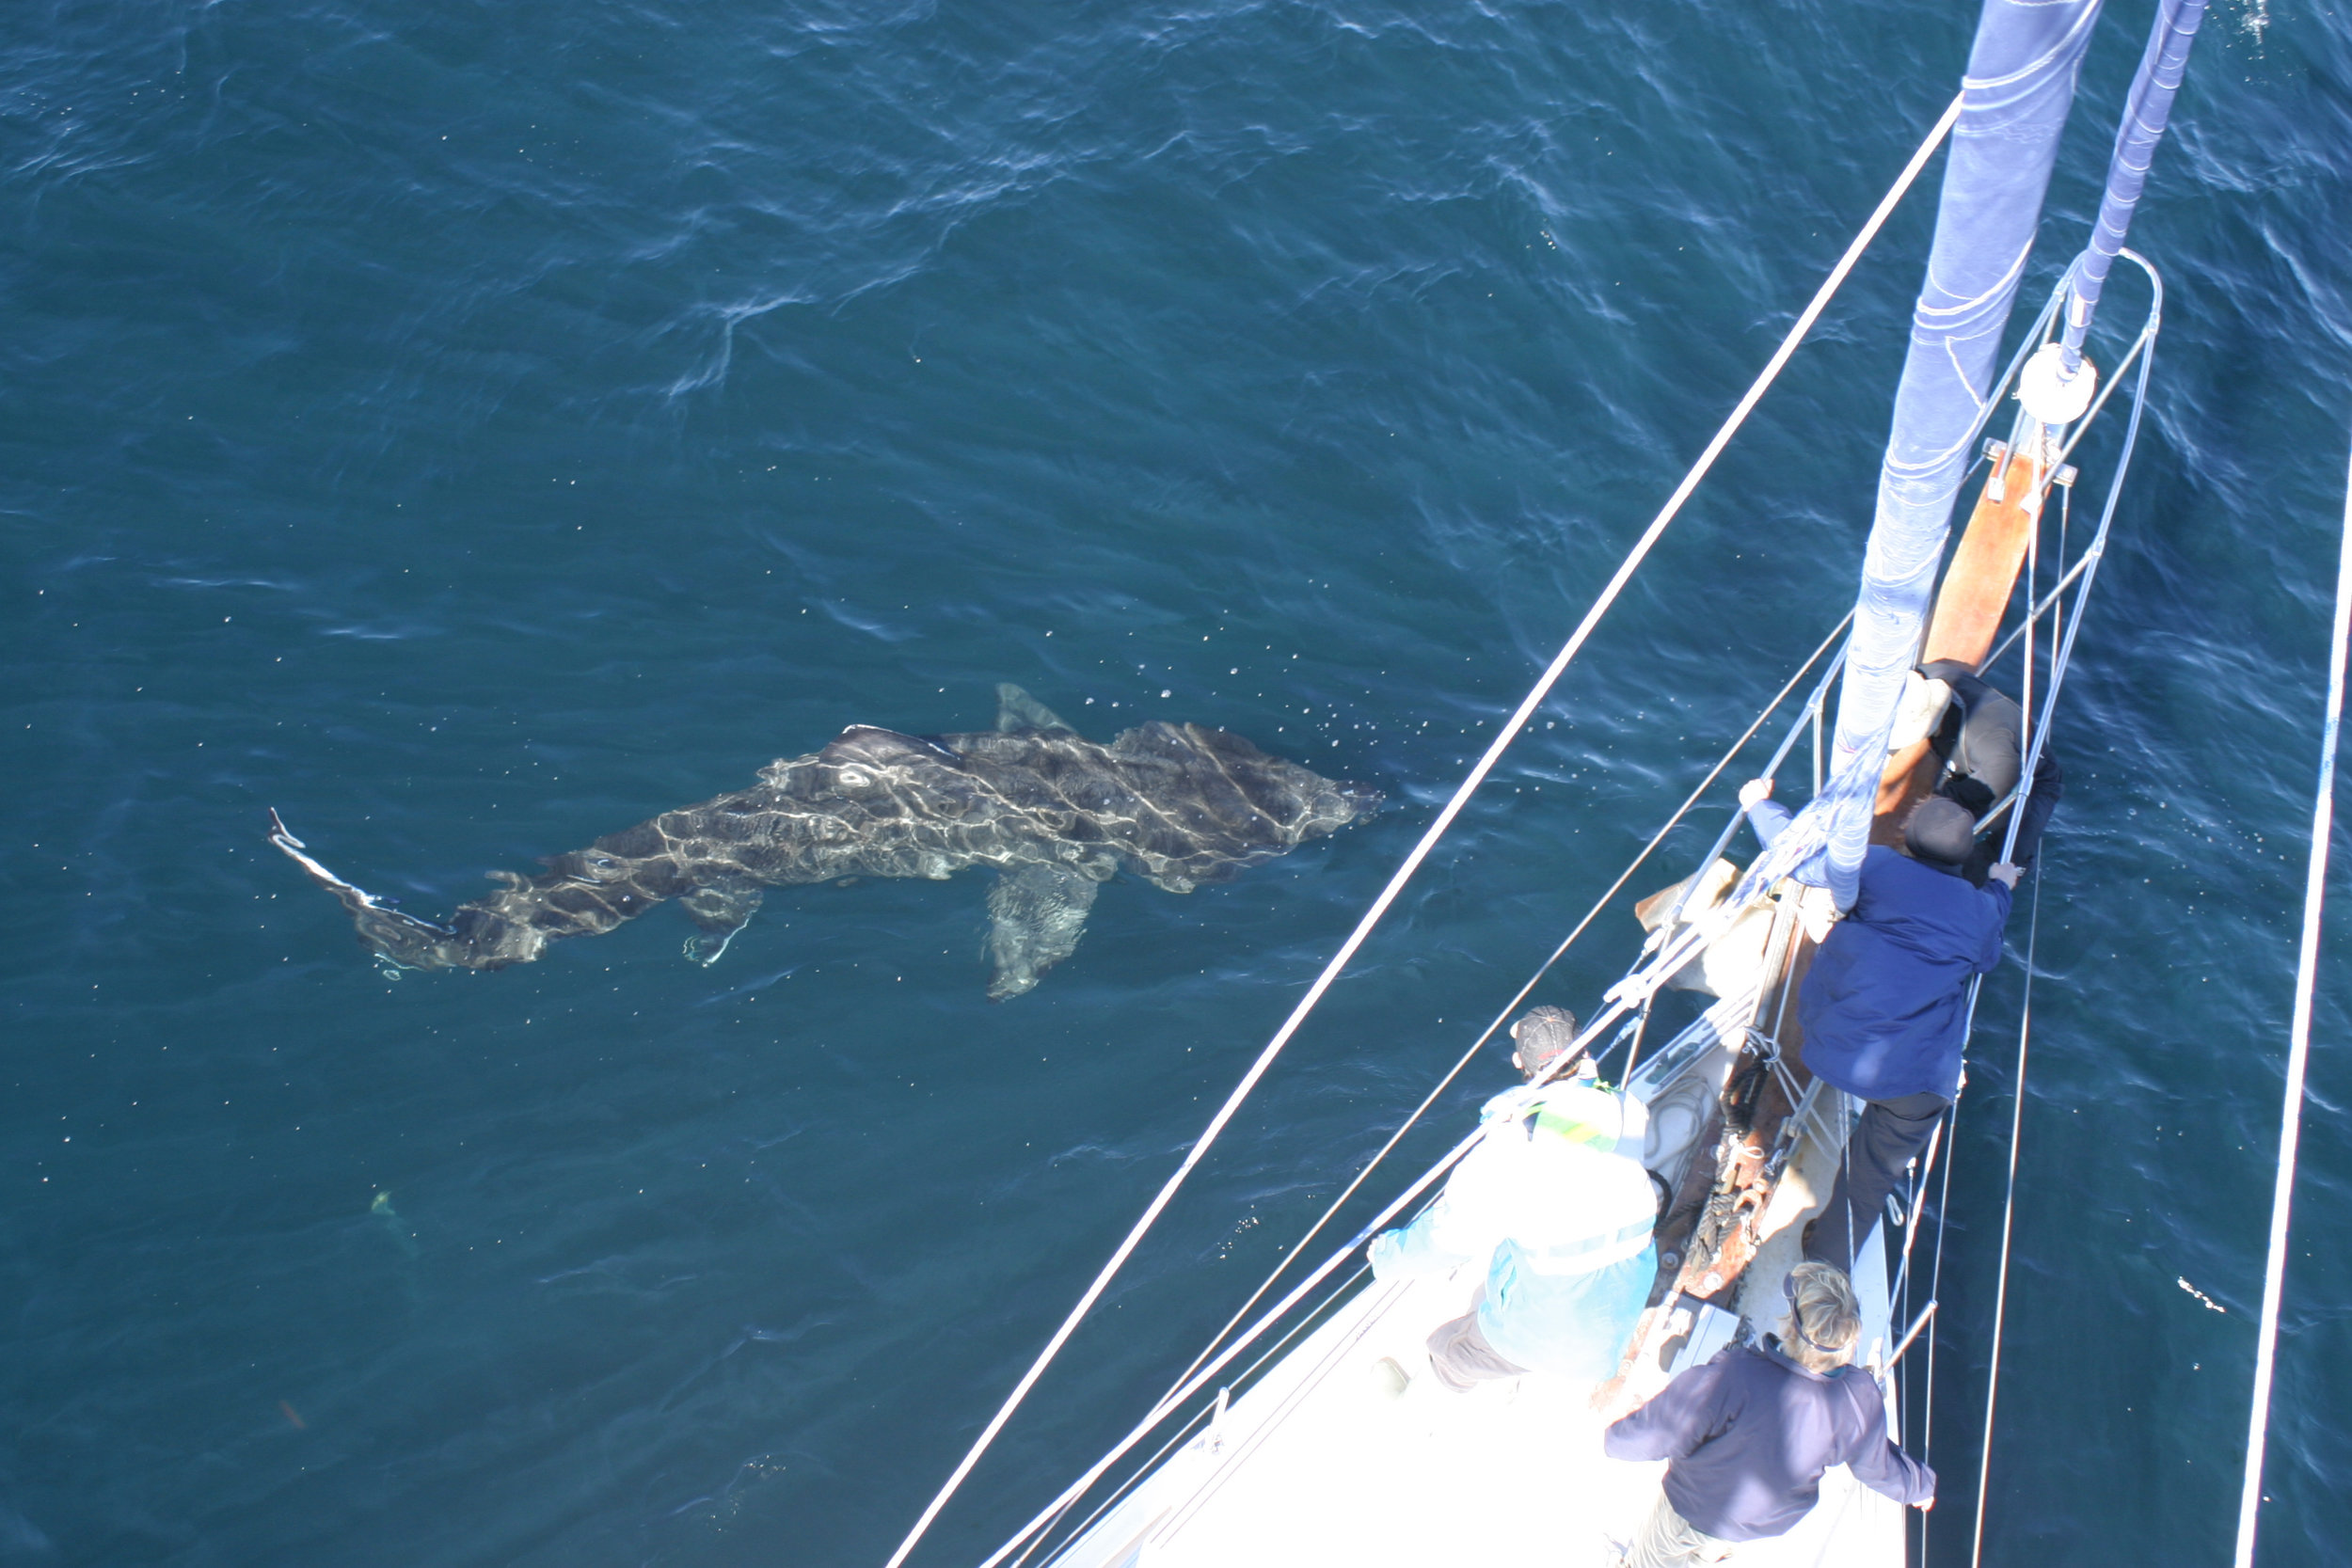 A close encounter with a basking shark